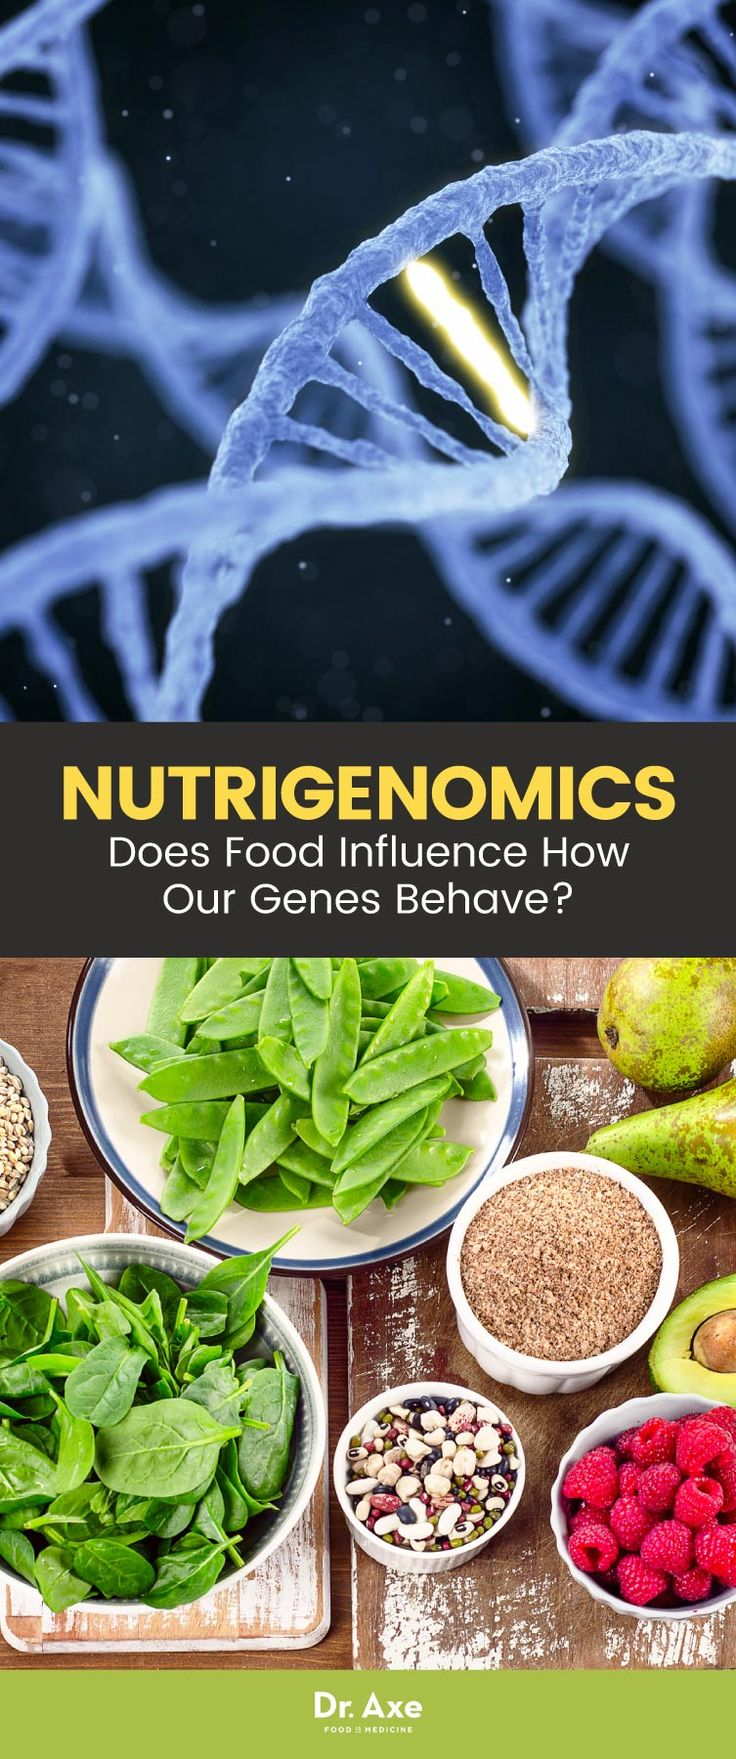 What if your genes aren't relegated to how you're born, but can be changed by your own actions — namely, the foods you eat? That could have long-lasting impact into how we prevent or treat a variety of diseases.